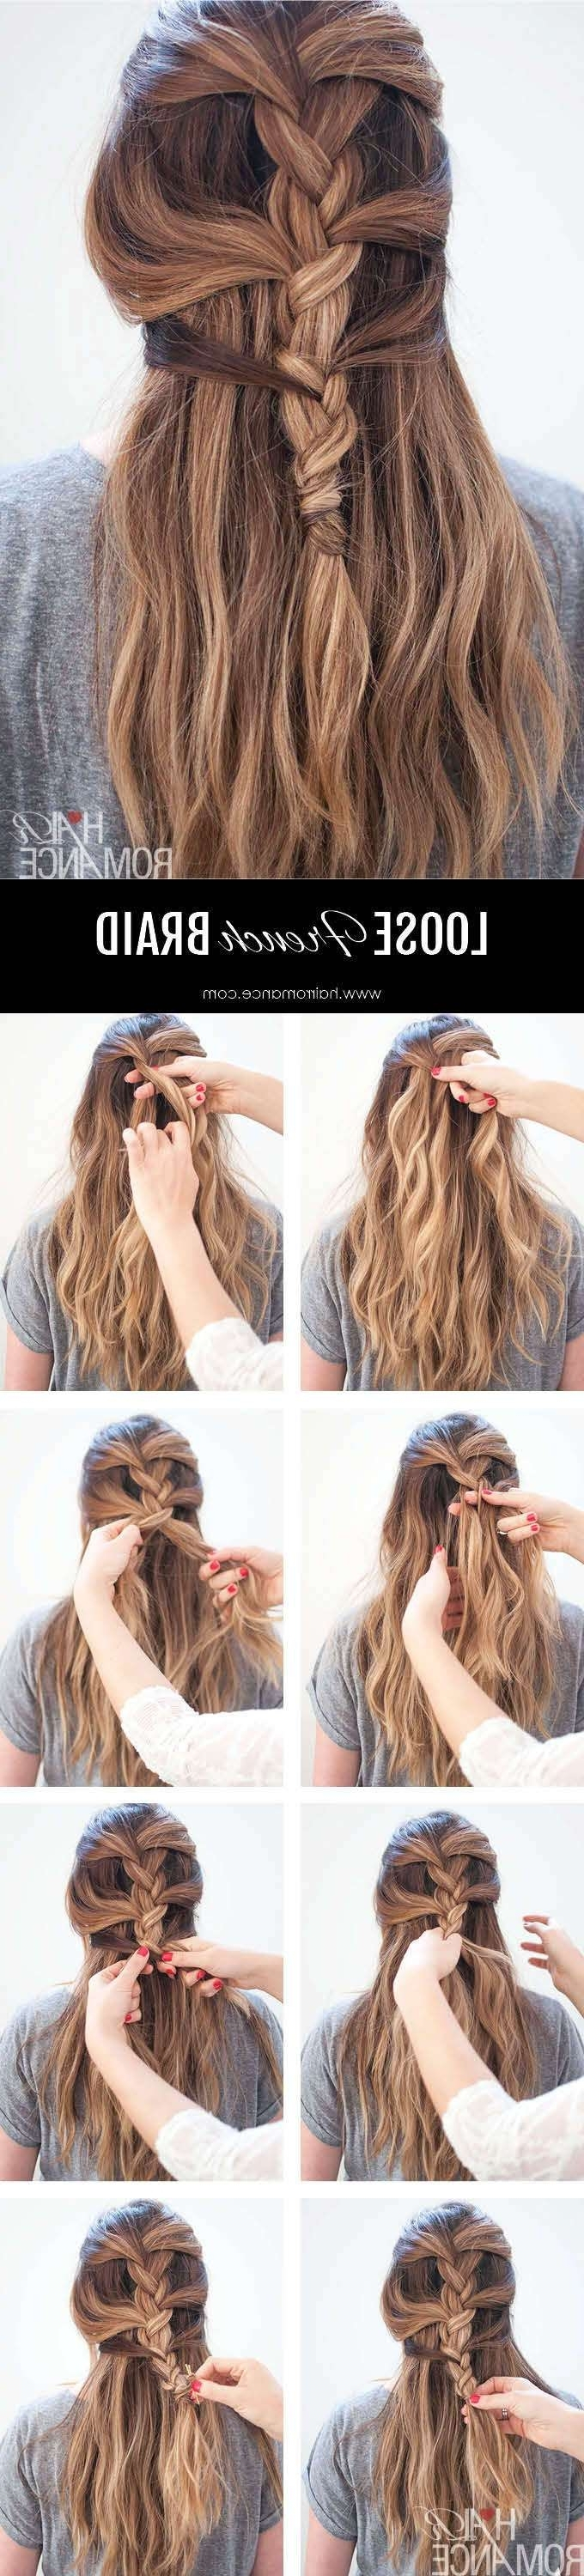 Loose Side French Braid Hairstyle Tutorial For Trendy Loose Side French Braid Hairstyles (View 12 of 15)